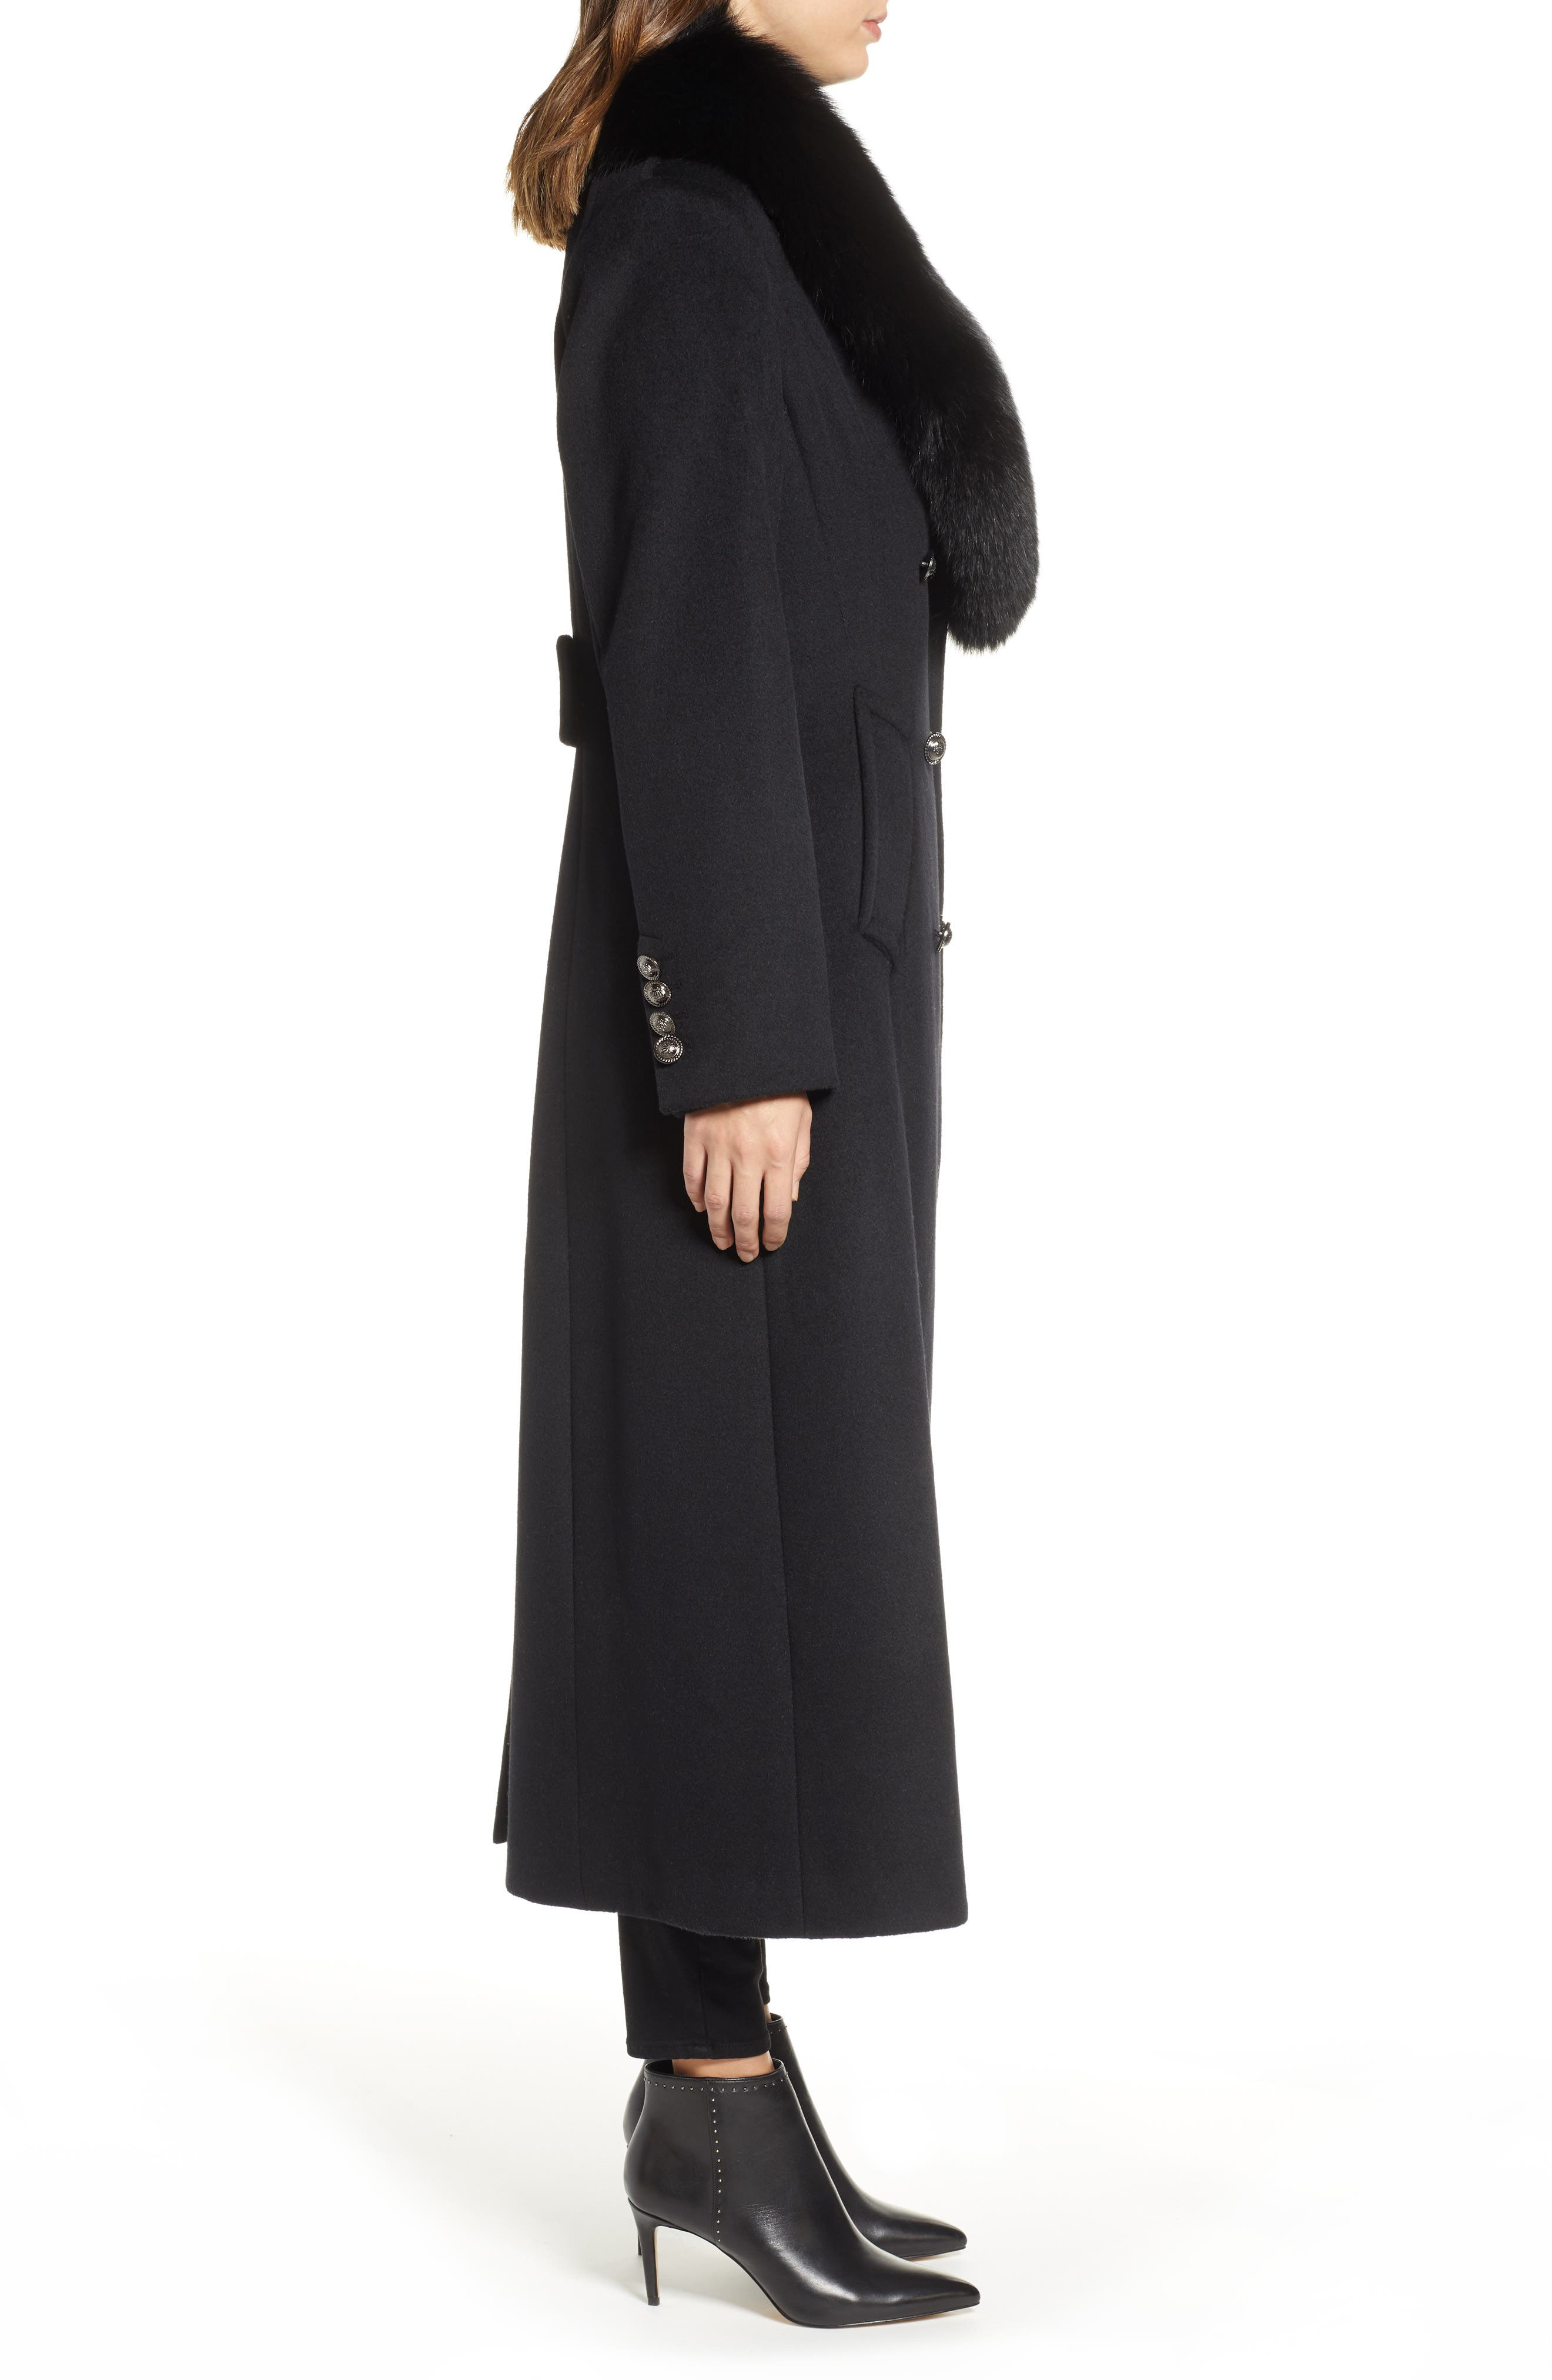 1 MADISON,                             Double Breasted Military Wool Coat with Genuine Fox Fur Shawl,                             Alternate thumbnail 3, color,                             BLACK